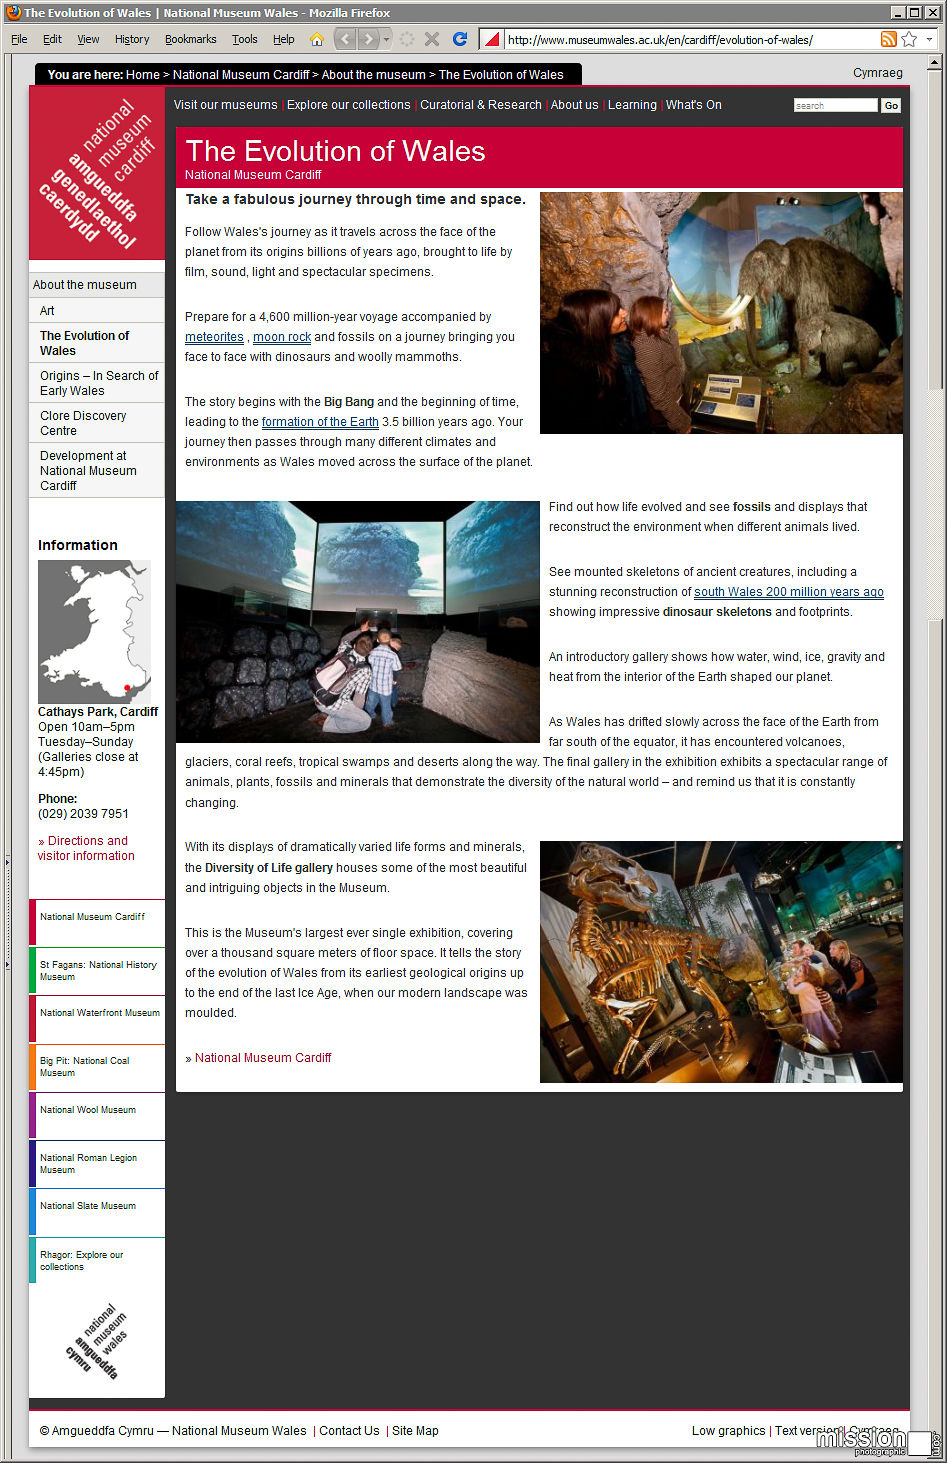 National Museums of Wales website with my photos